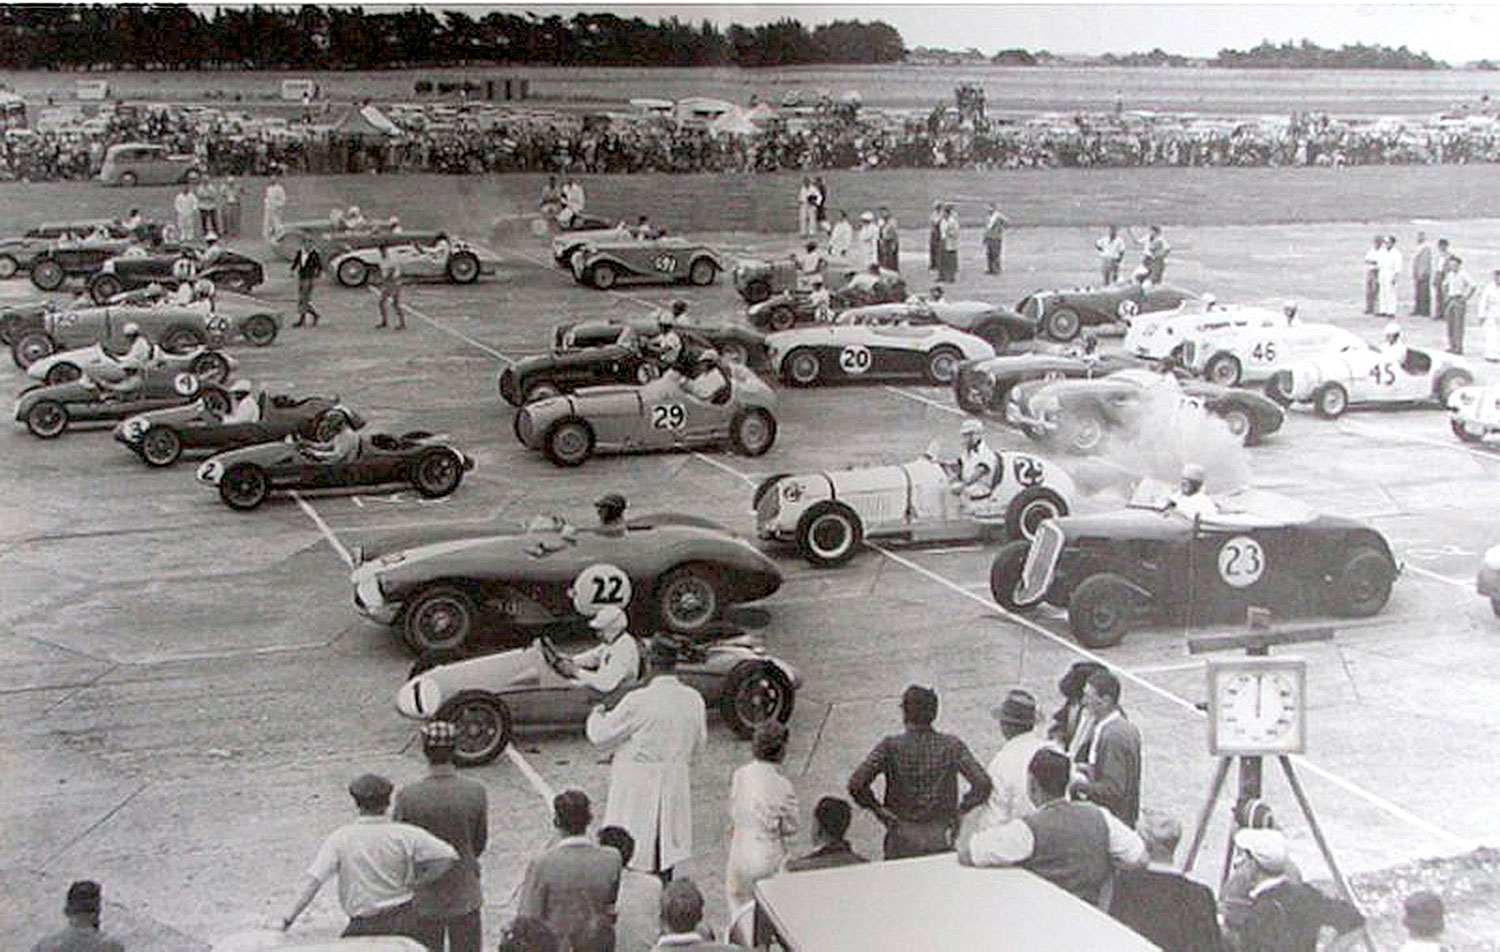 The start of the Selwyn Molesworth Trophy at Ohakea, 1956